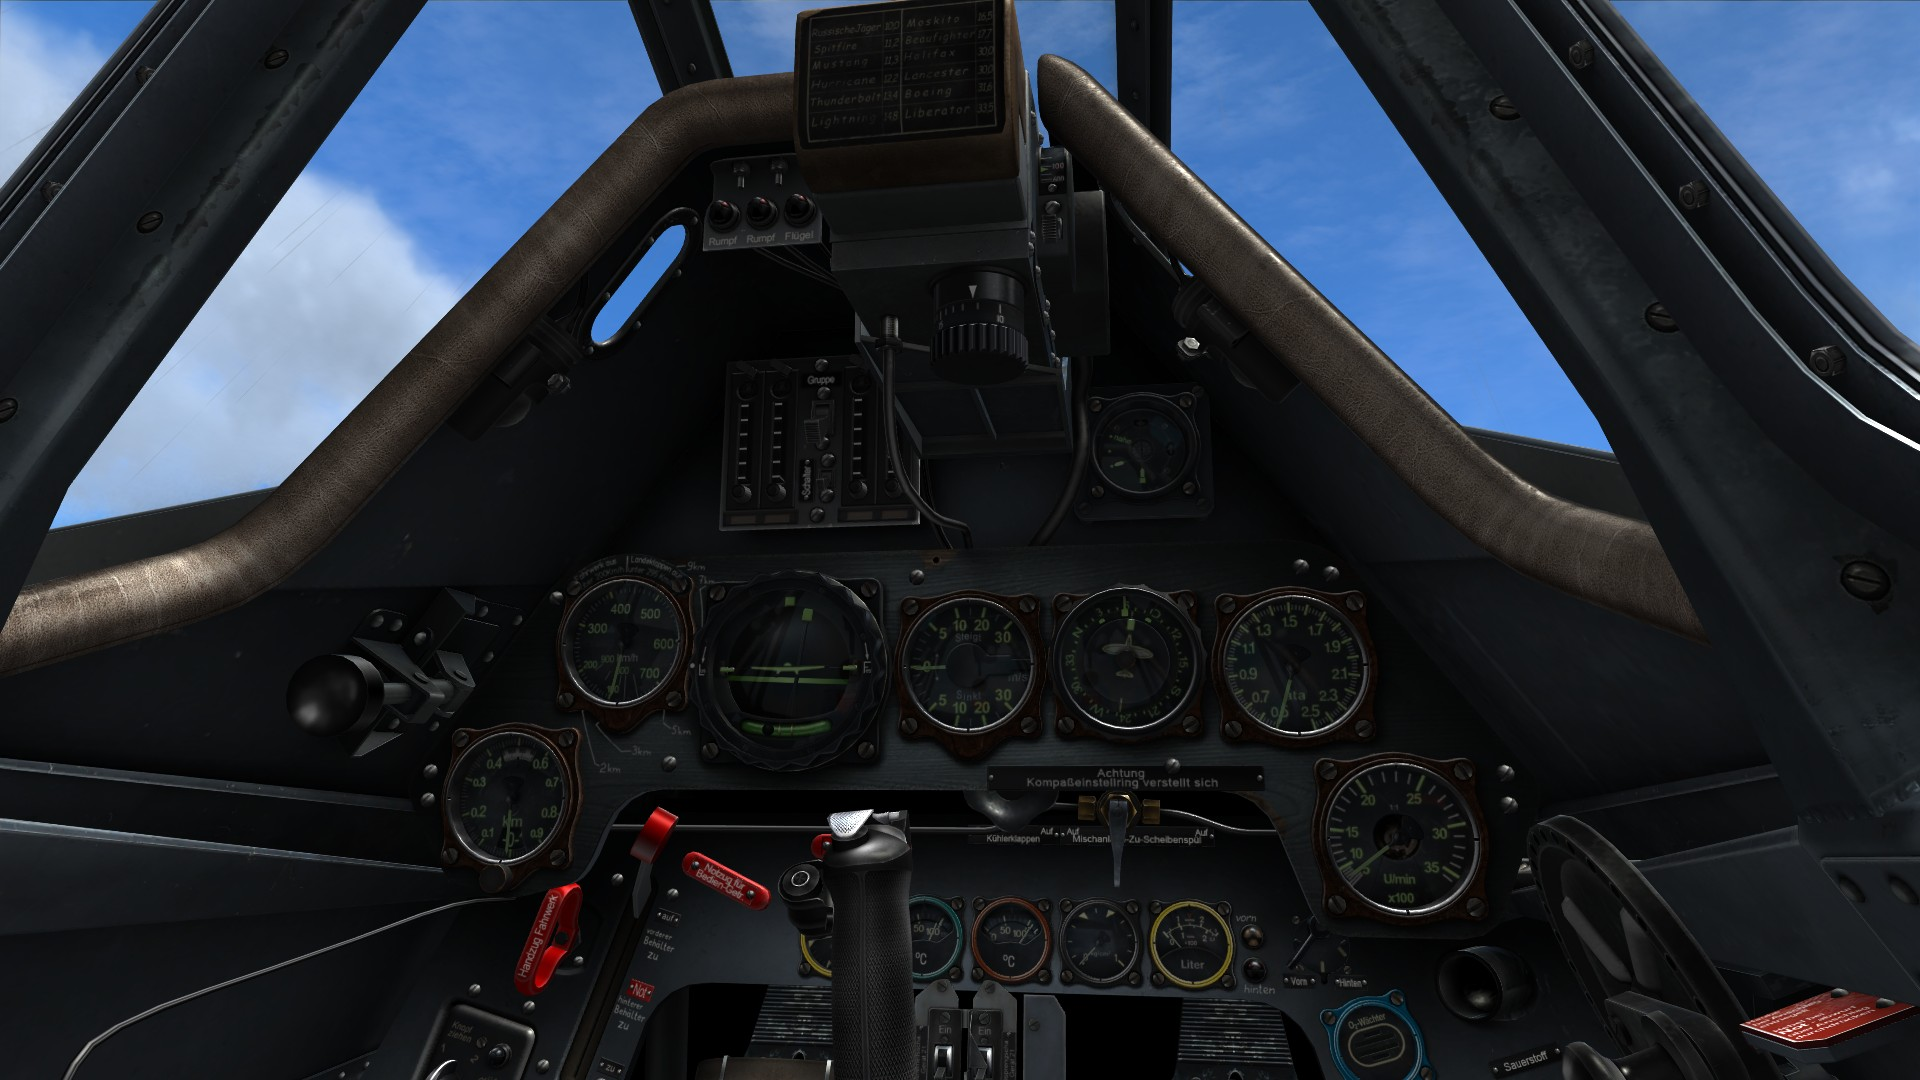 Should I re-buy a DCS WW2 plane or stick with Il2? - Free